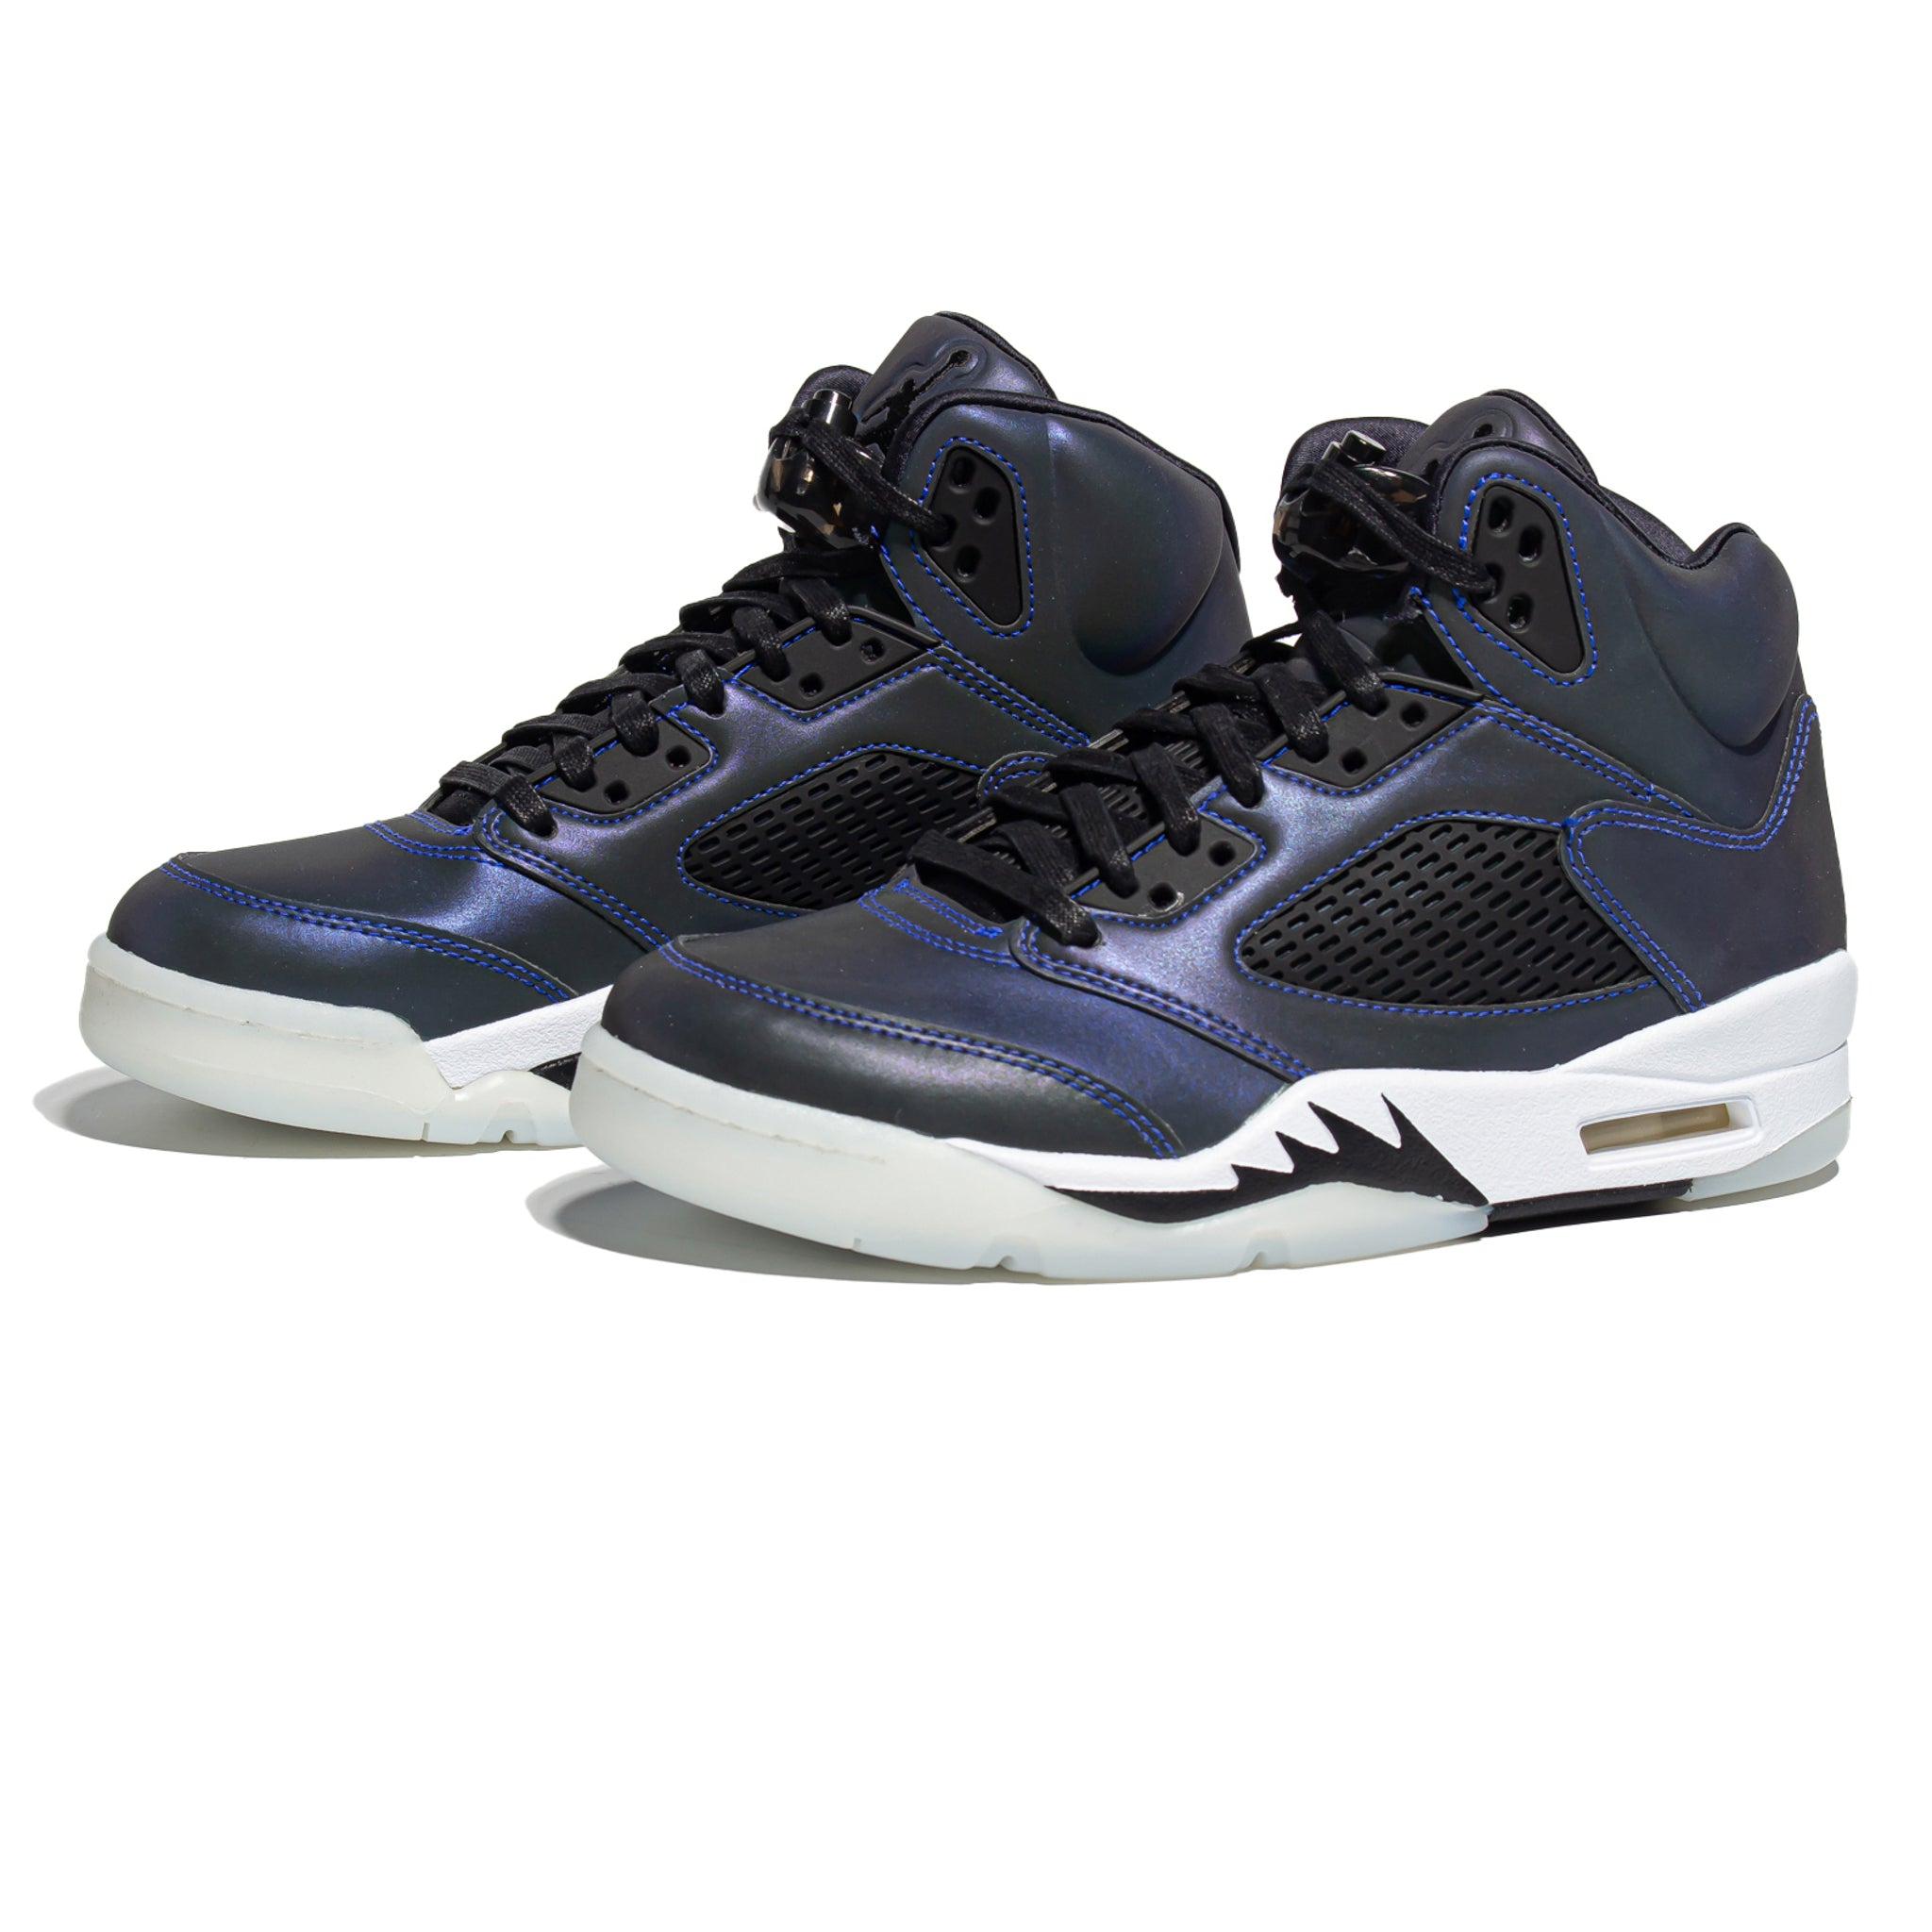 Air Jordan 5 Retro Women's 'Oil Spill'